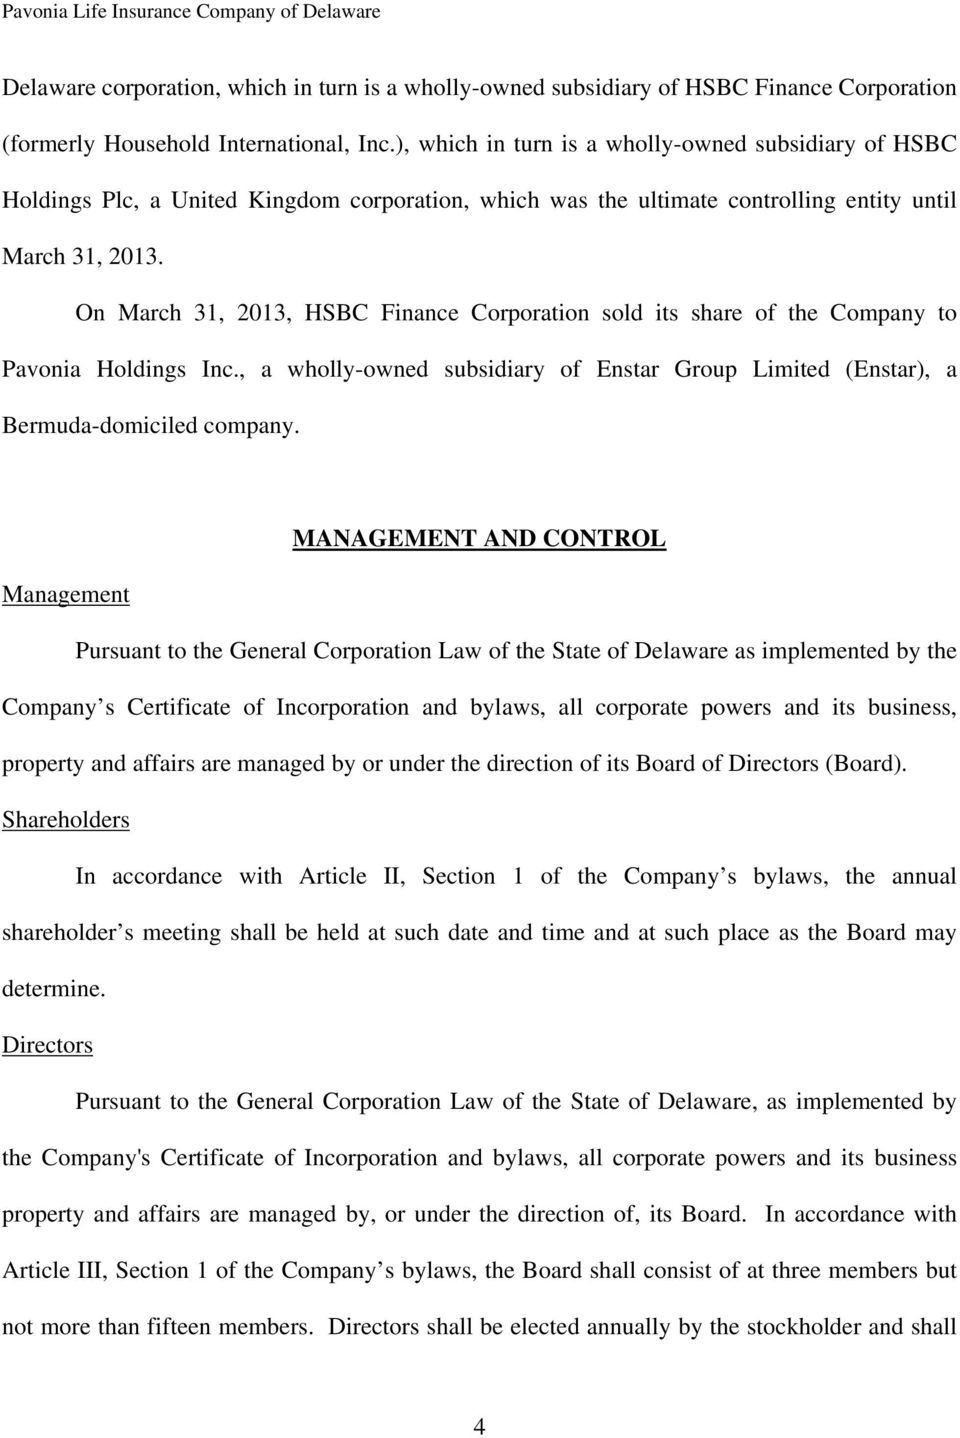 On March 31, 2013, HSBC Finance Corporation sold its share of the Company to Pavonia Holdings Inc., a wholly-owned subsidiary of Enstar Group Limited (Enstar), a Bermuda-domiciled company.